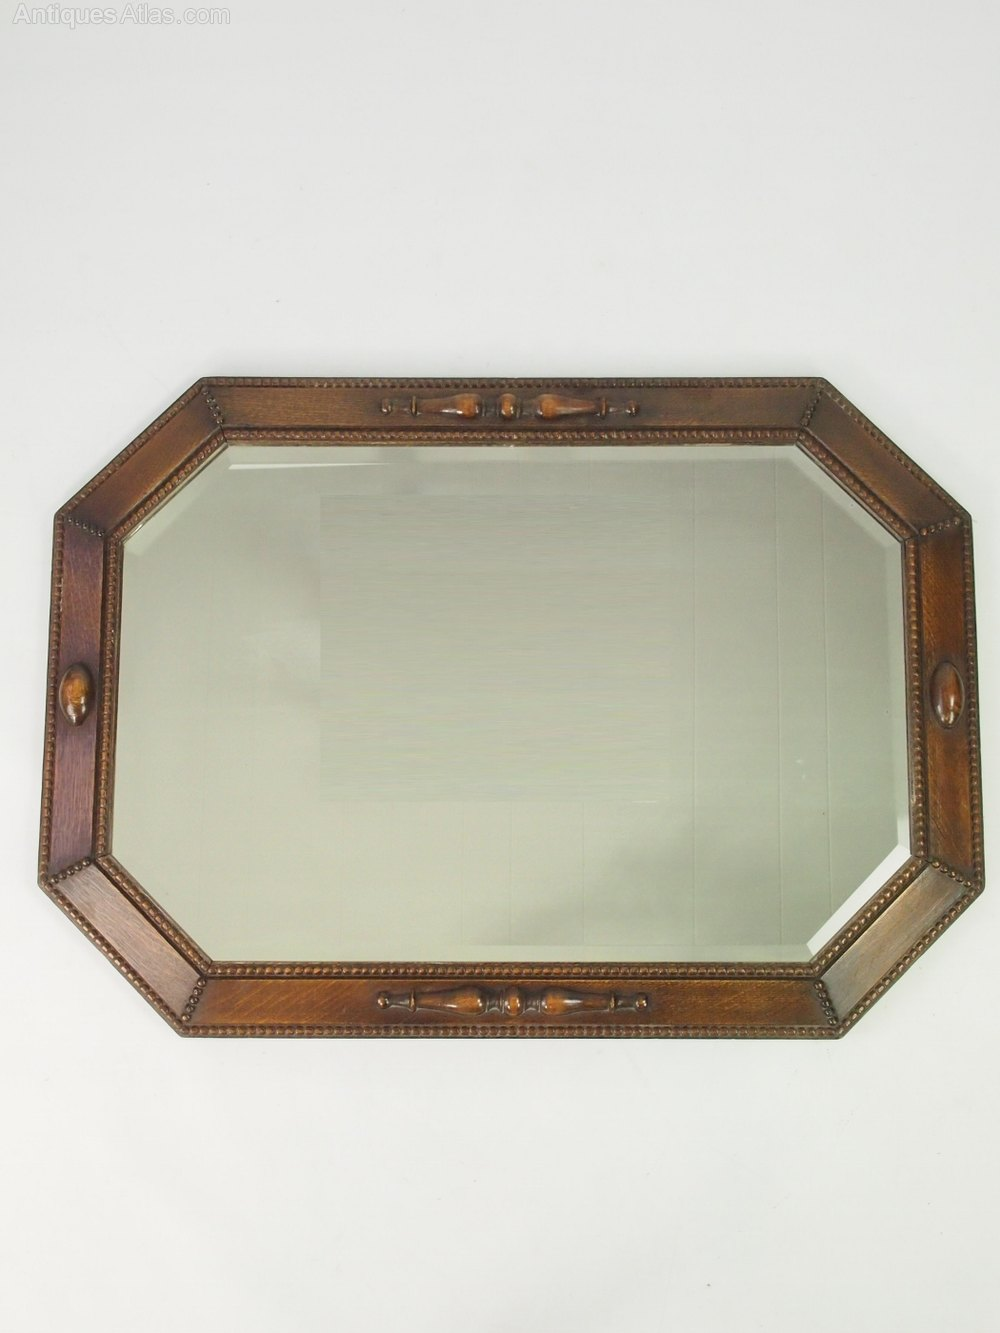 Antiques atlas large vintage oak framed mirror or overmantle for Large framed mirrors